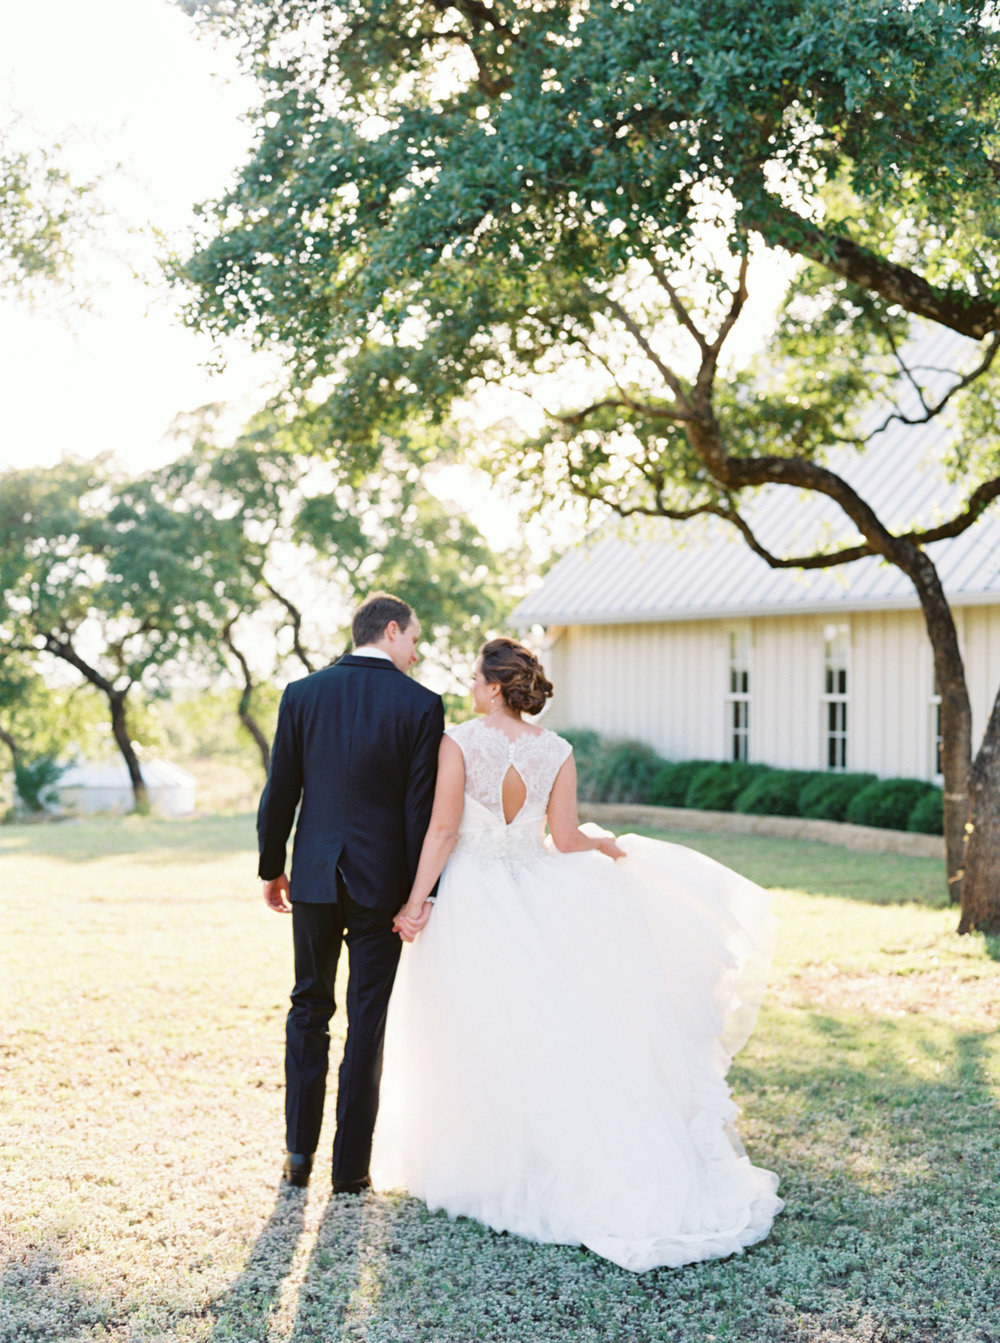 AUSTIN WEDDING PHOTOGRAPHER PHOTO-85.jpg